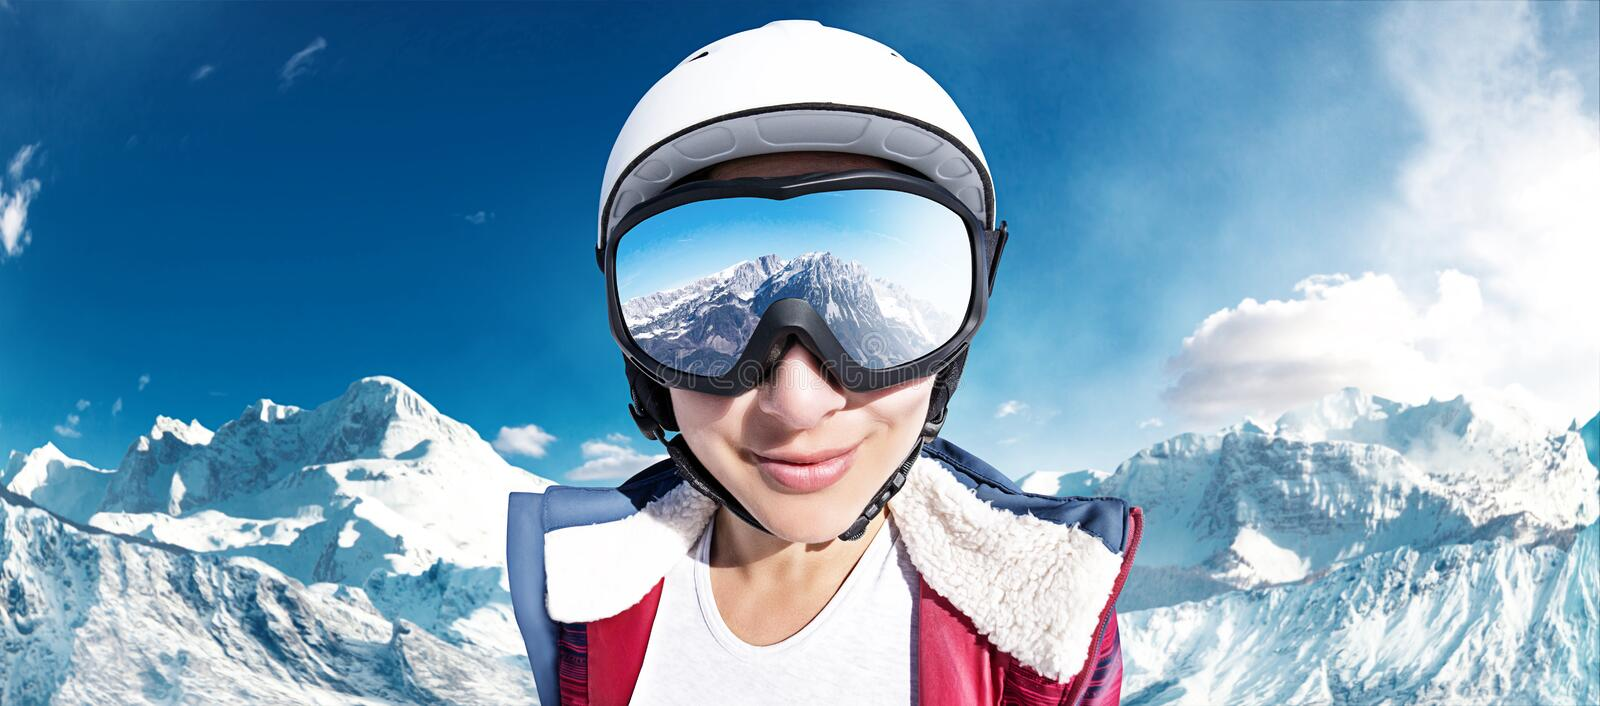 Ski girl. In front of the snowy mountains